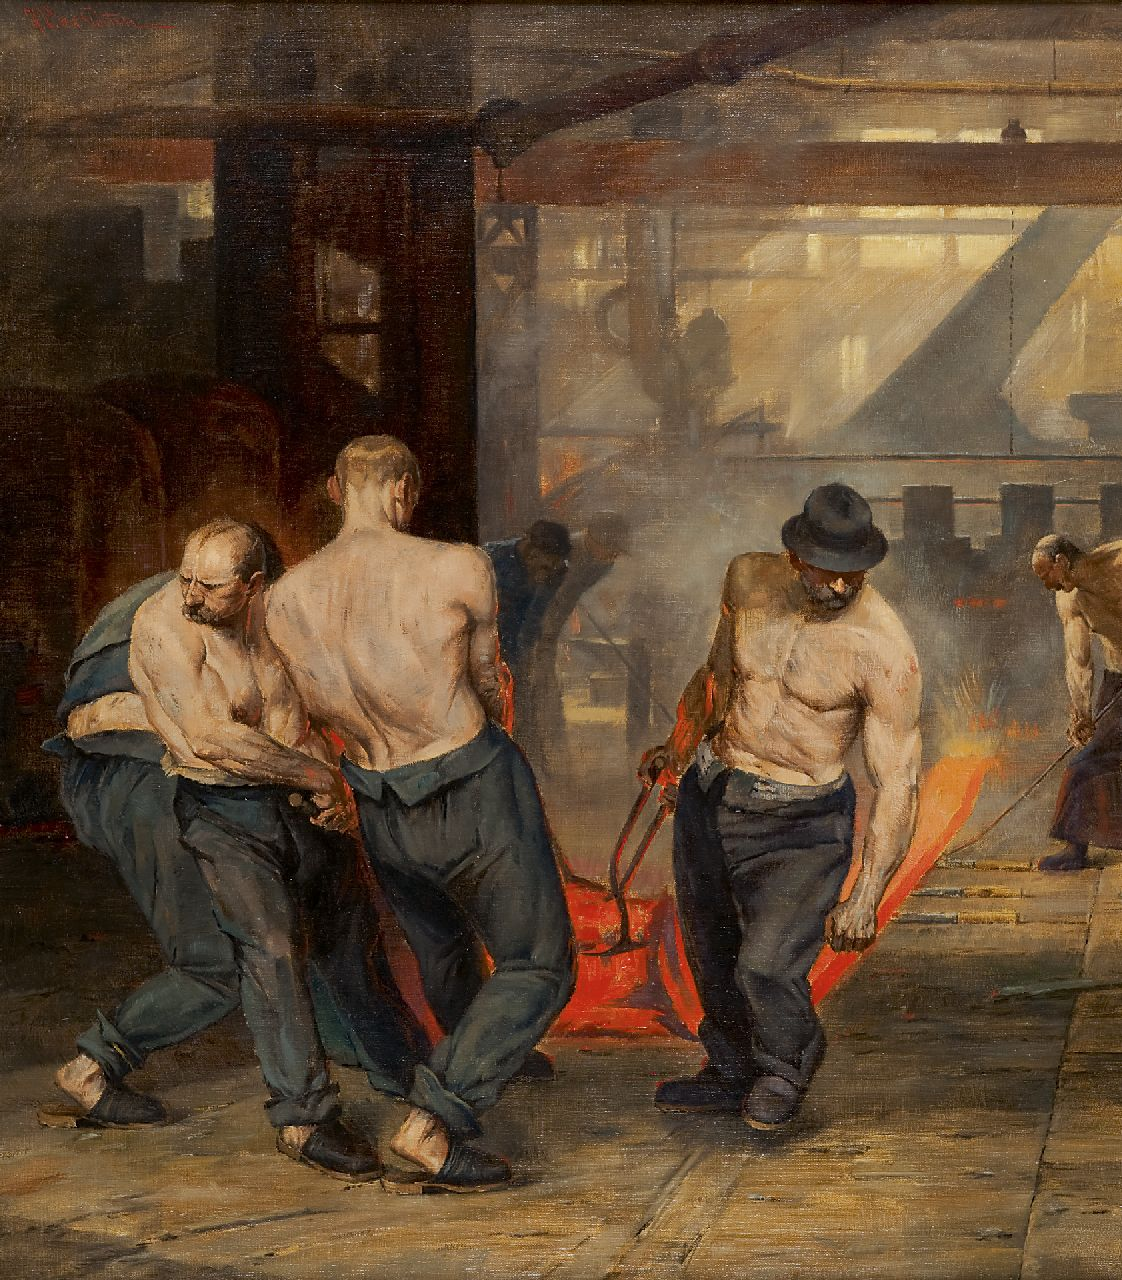 H.V. v.d. Porten | Labourers in a steel-rolling mill, oil on canvas, 80.2 x 70.2 cm, signed u.l.